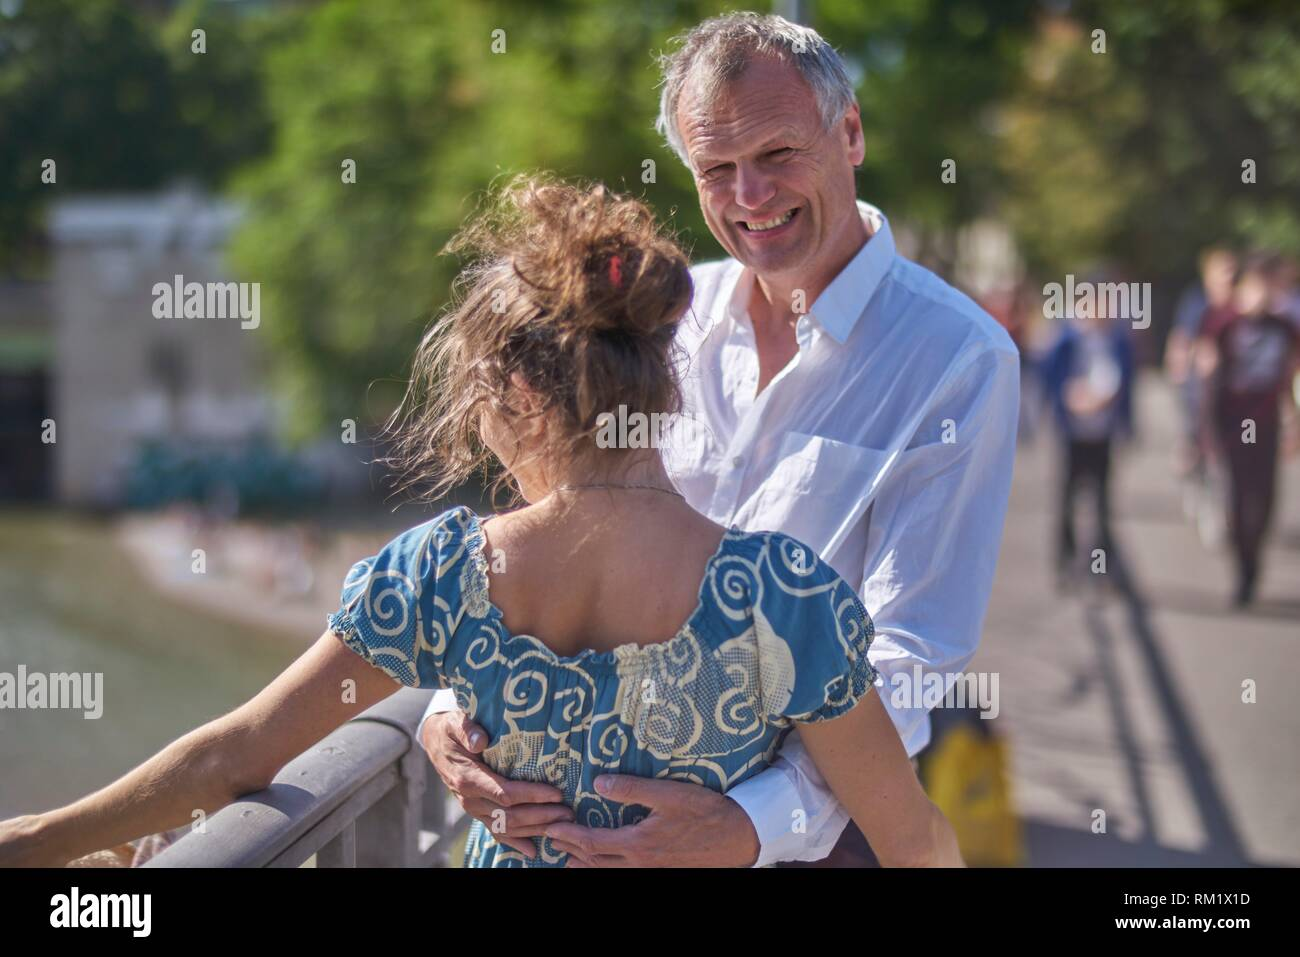 Couple, age difference. Munich, Germany. - Stock Image